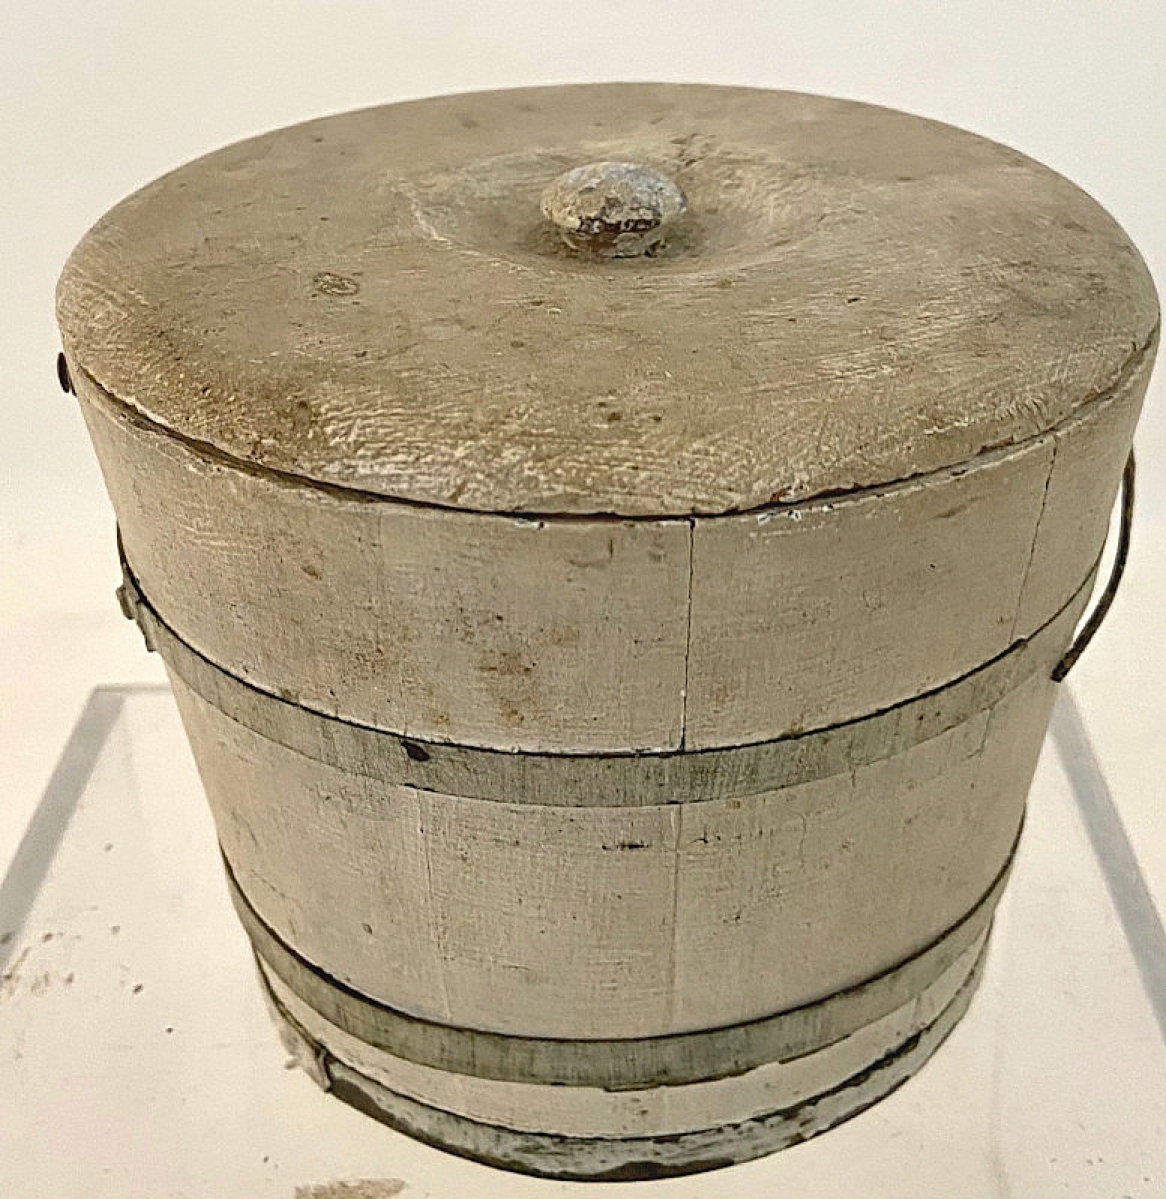 One of just two Canadian dealers in the show, Barry Ezrin Antiques of Moffat, Ontario, had a few sales, including two berry pails; this example was one of them. It retained its original white paint, lid, wire and wooden handle and had been in the collection of Nova Scotia dealer Murray Stewart. It sold in the first hour of the show.